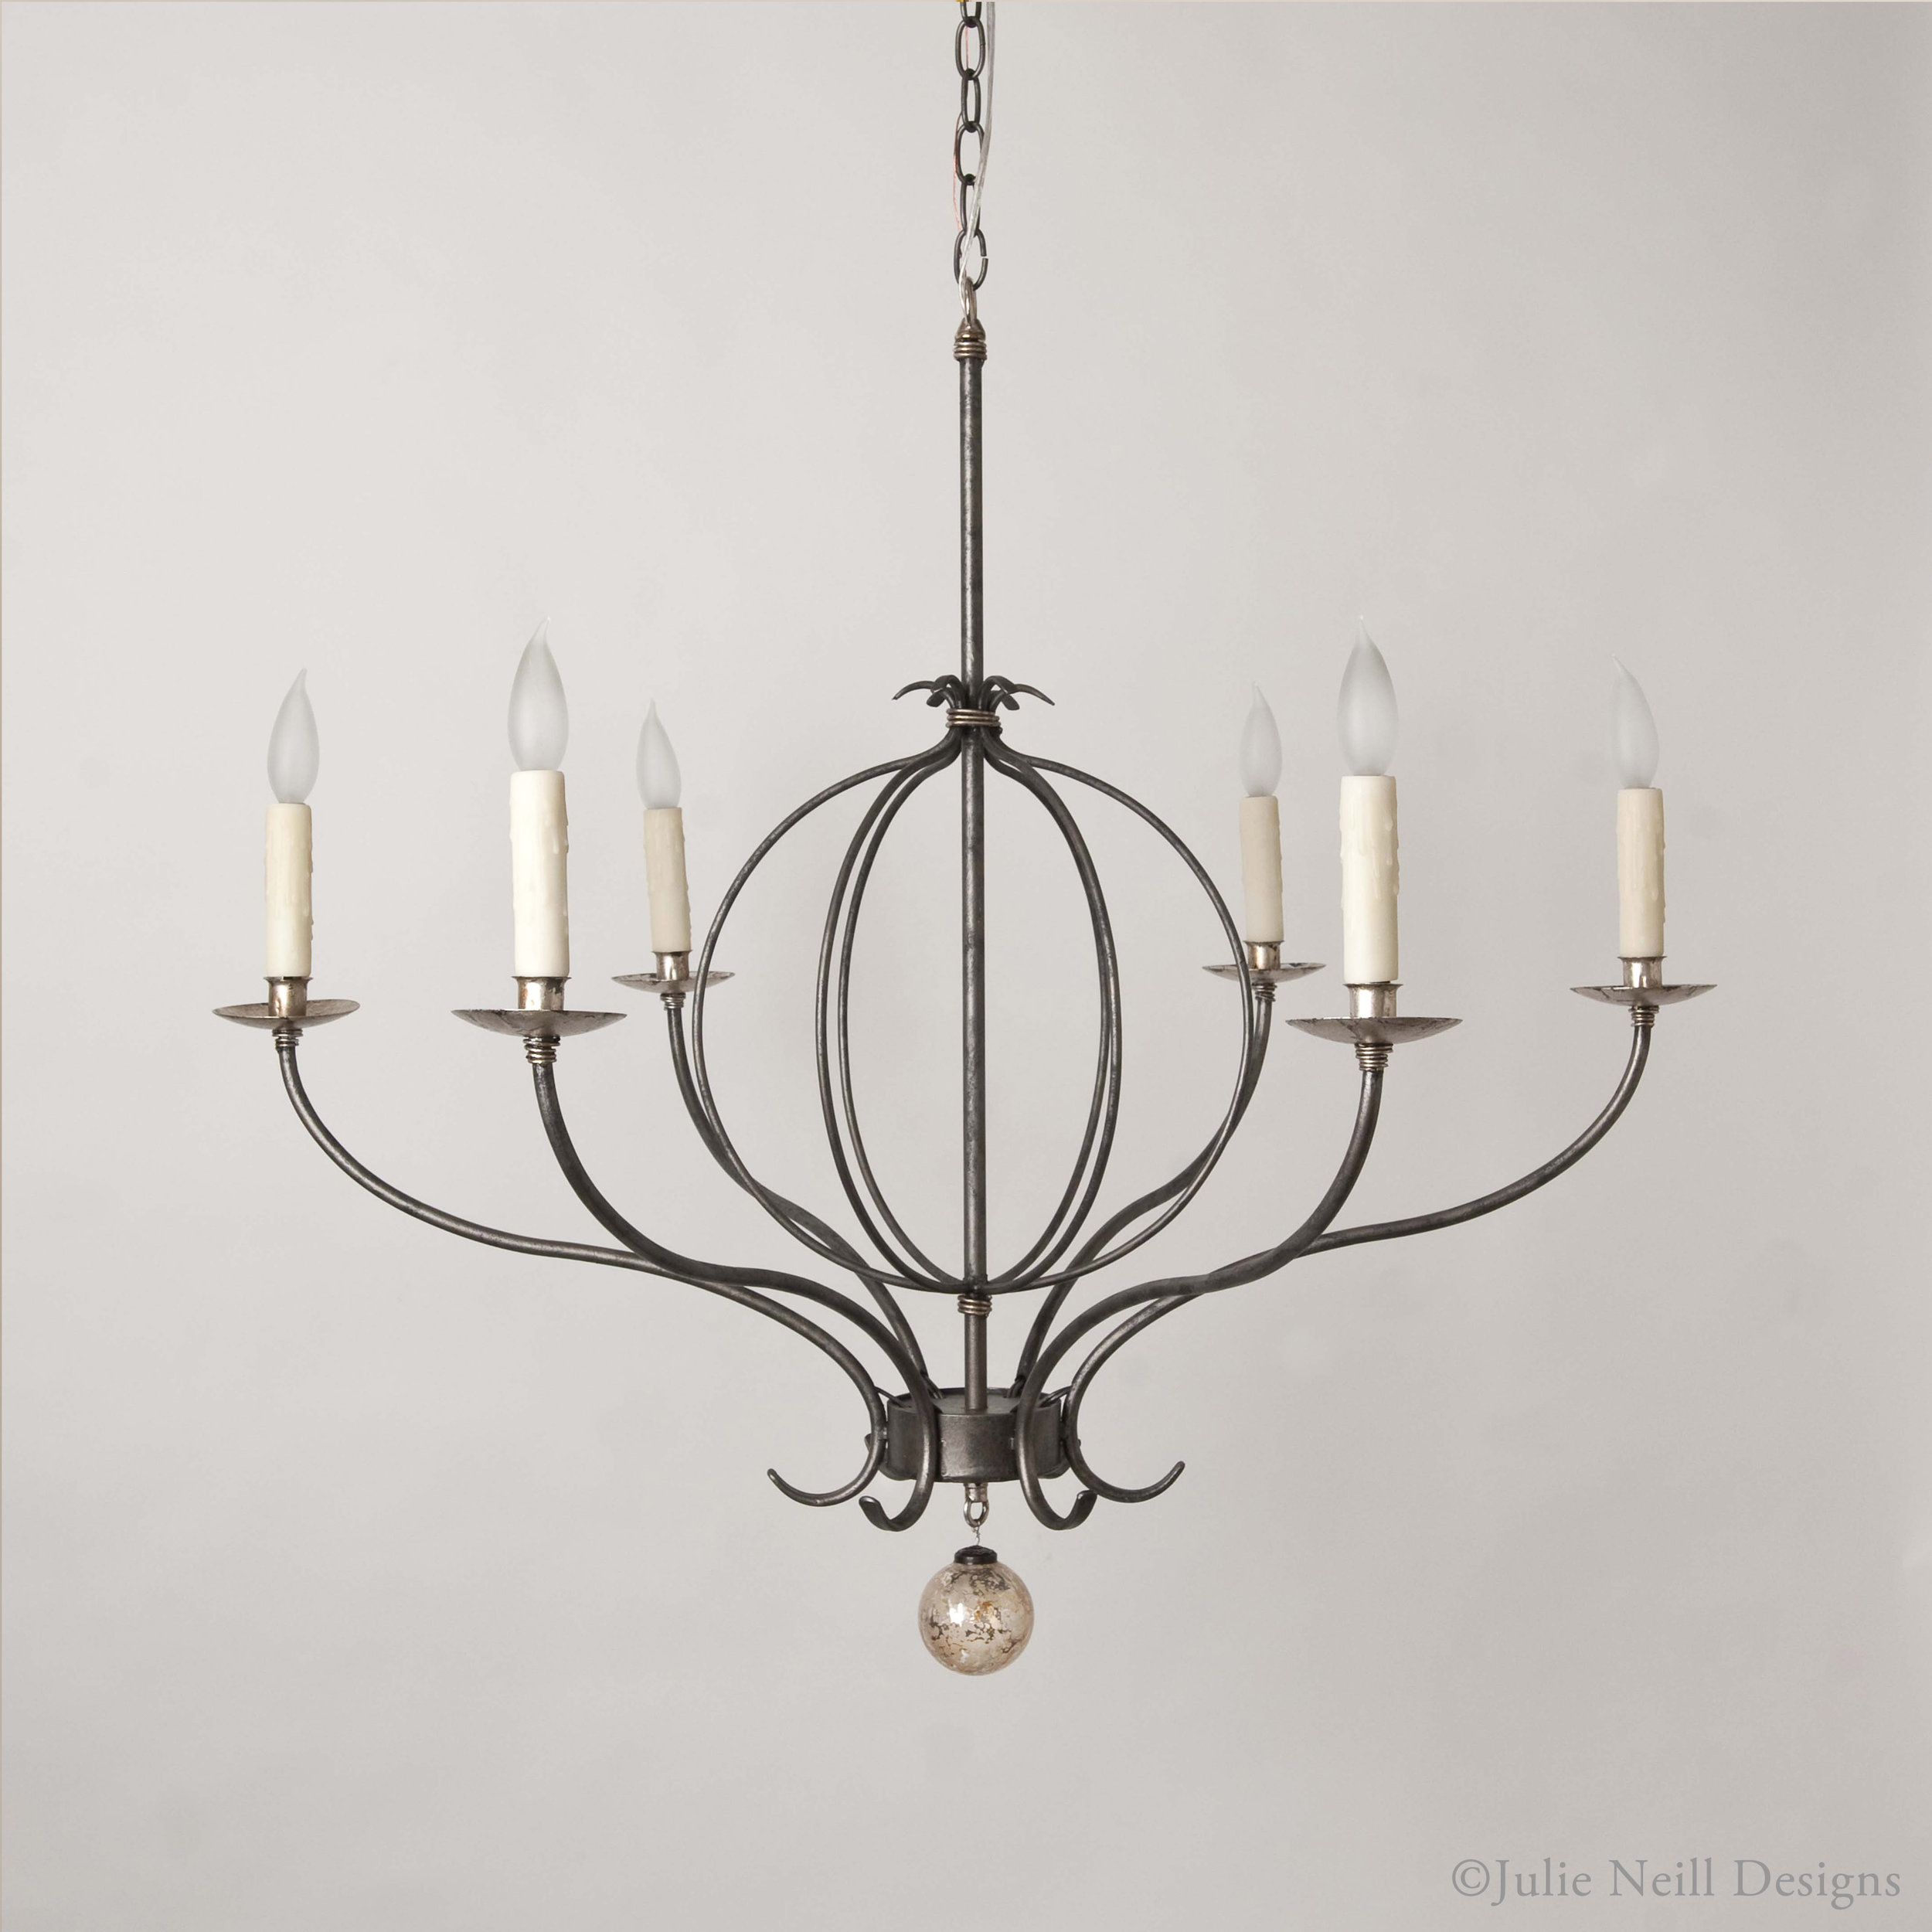 Martin_Chandelier_JulieNeillDesigns